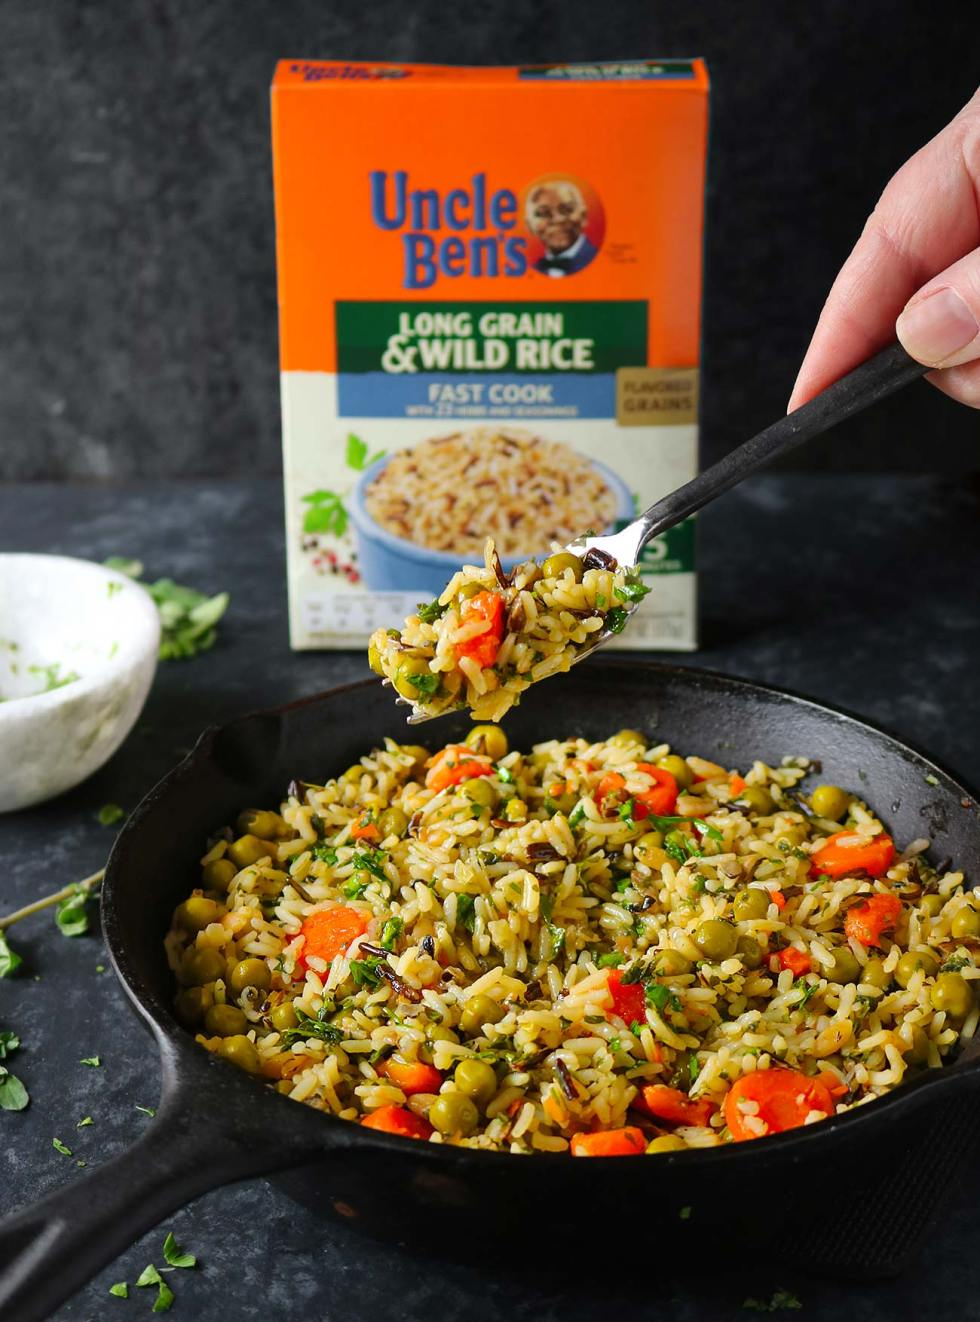 Long Grain Rice Medley with Peas, Carrots and Chimichurri Sauce from SoupAddict.com